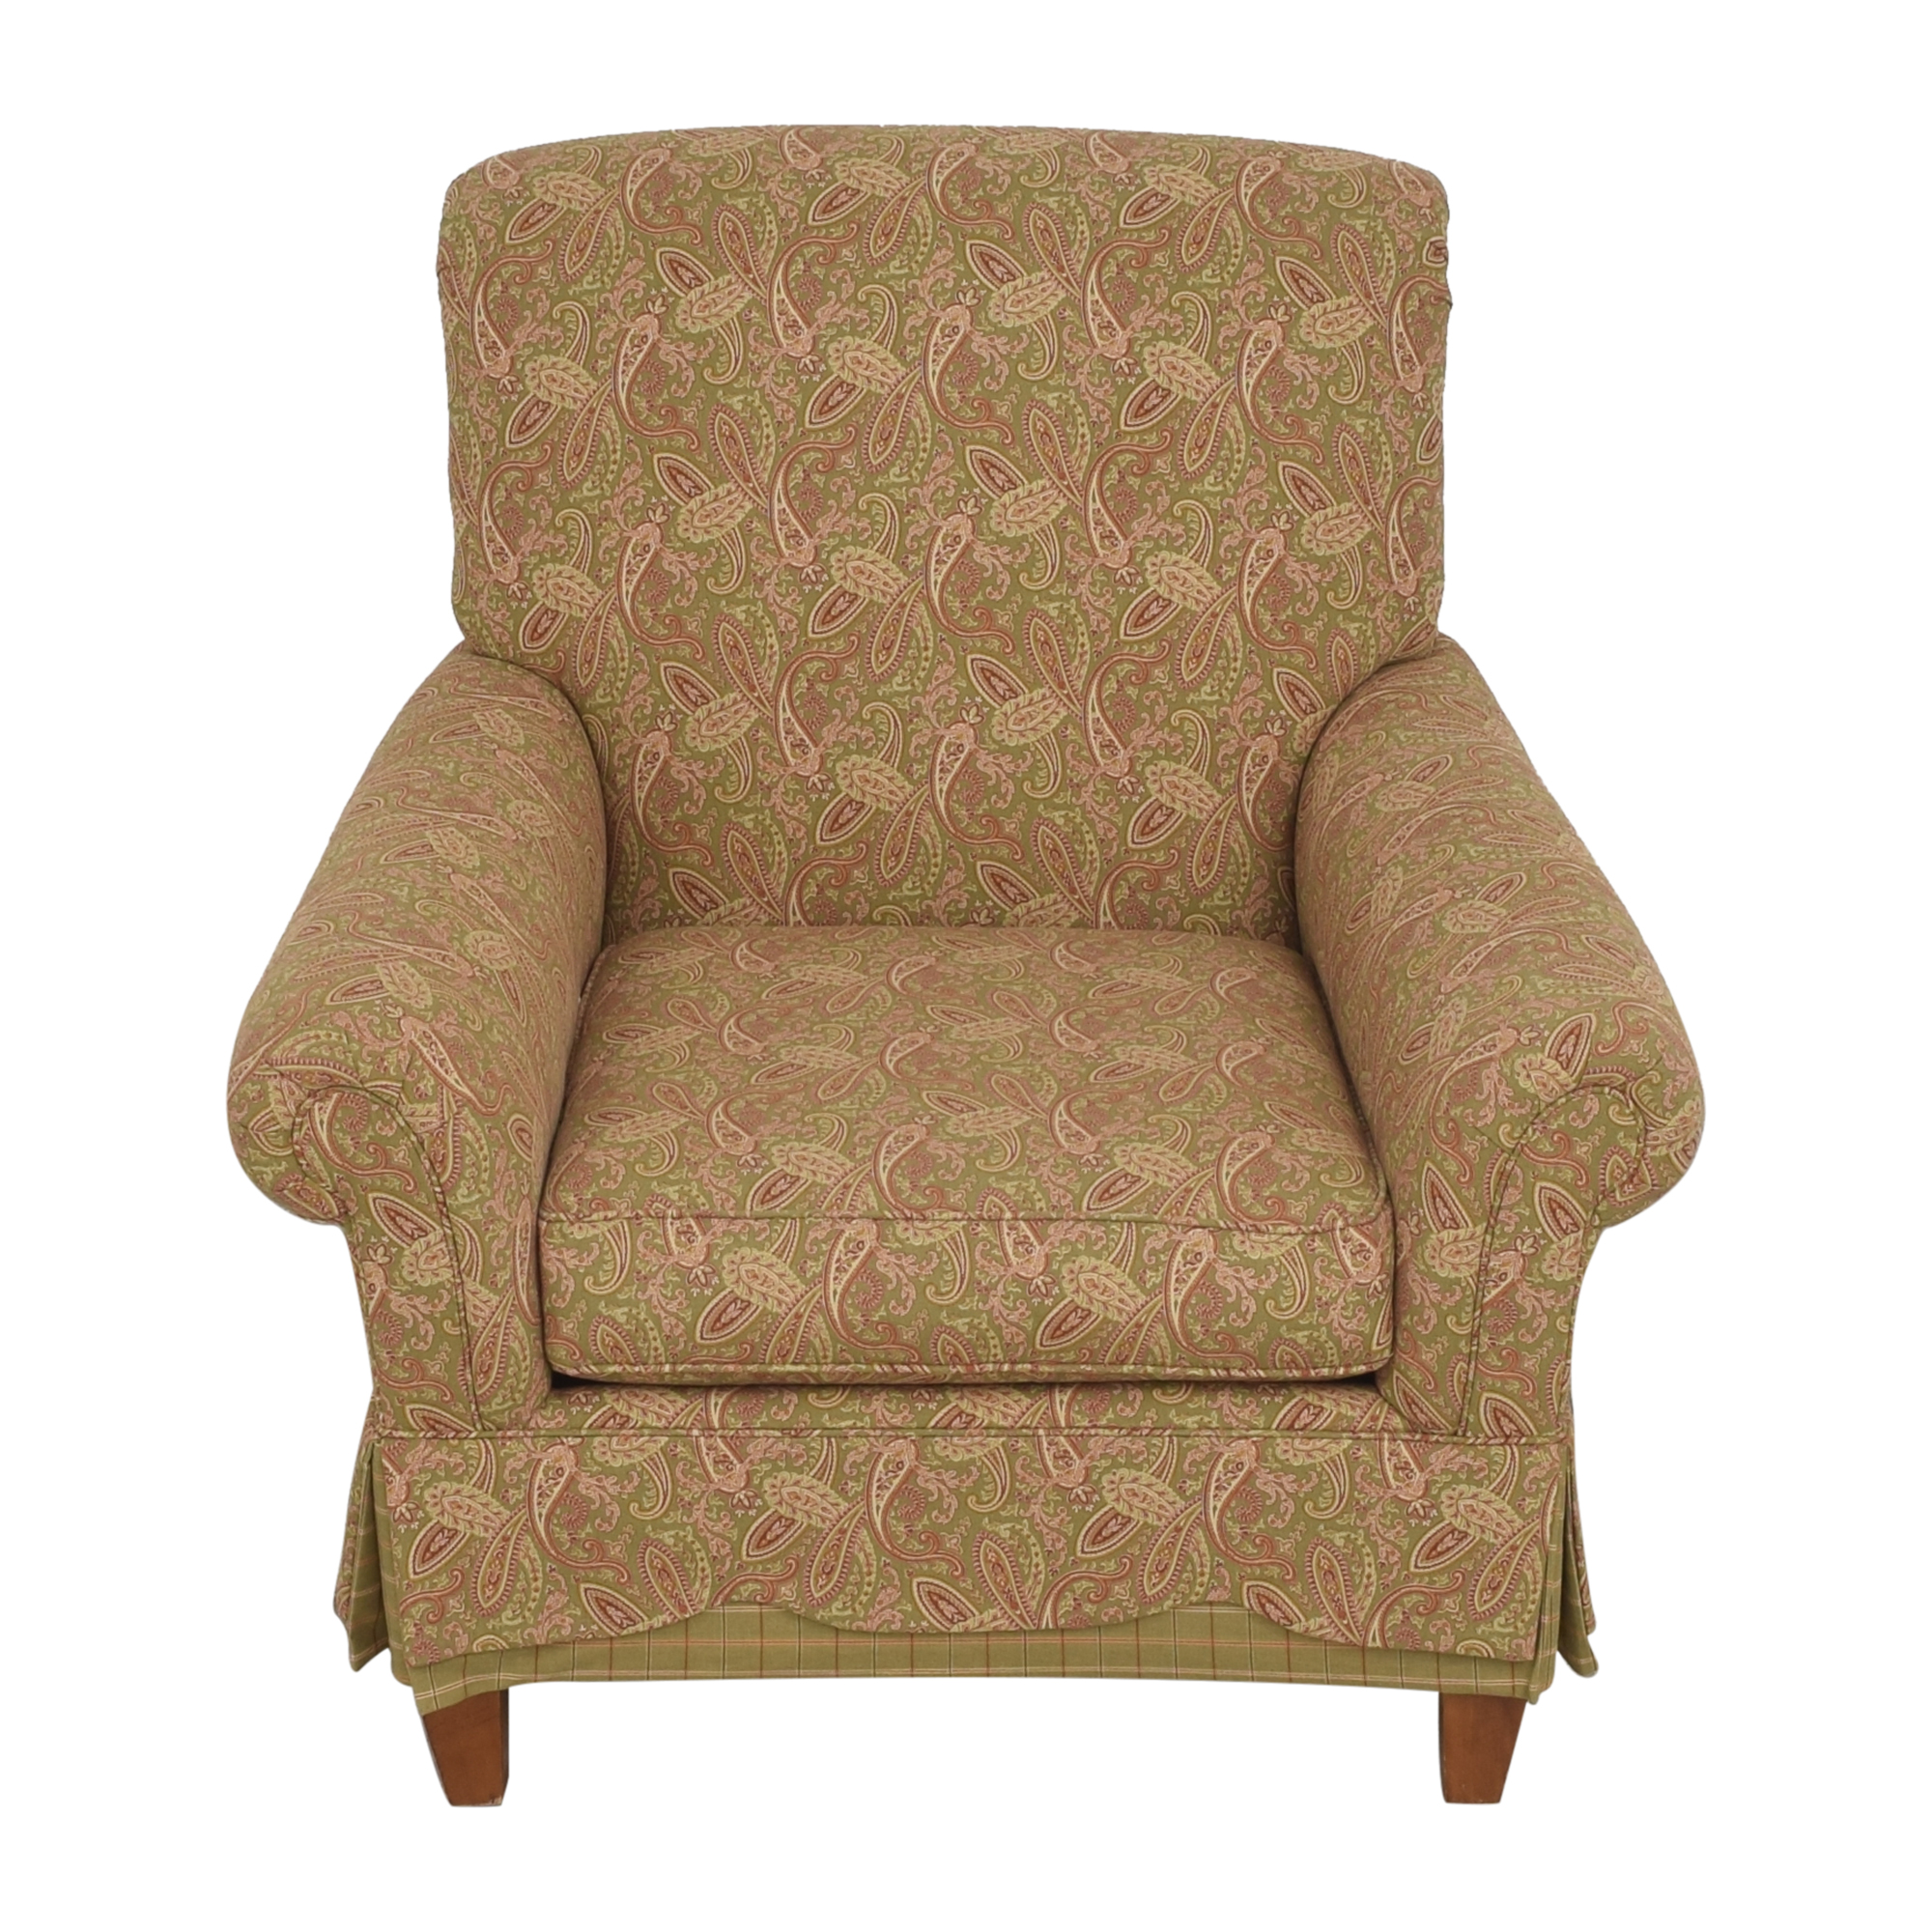 Clayton Marcus Clayton Marcus Skirted Accent Chair price